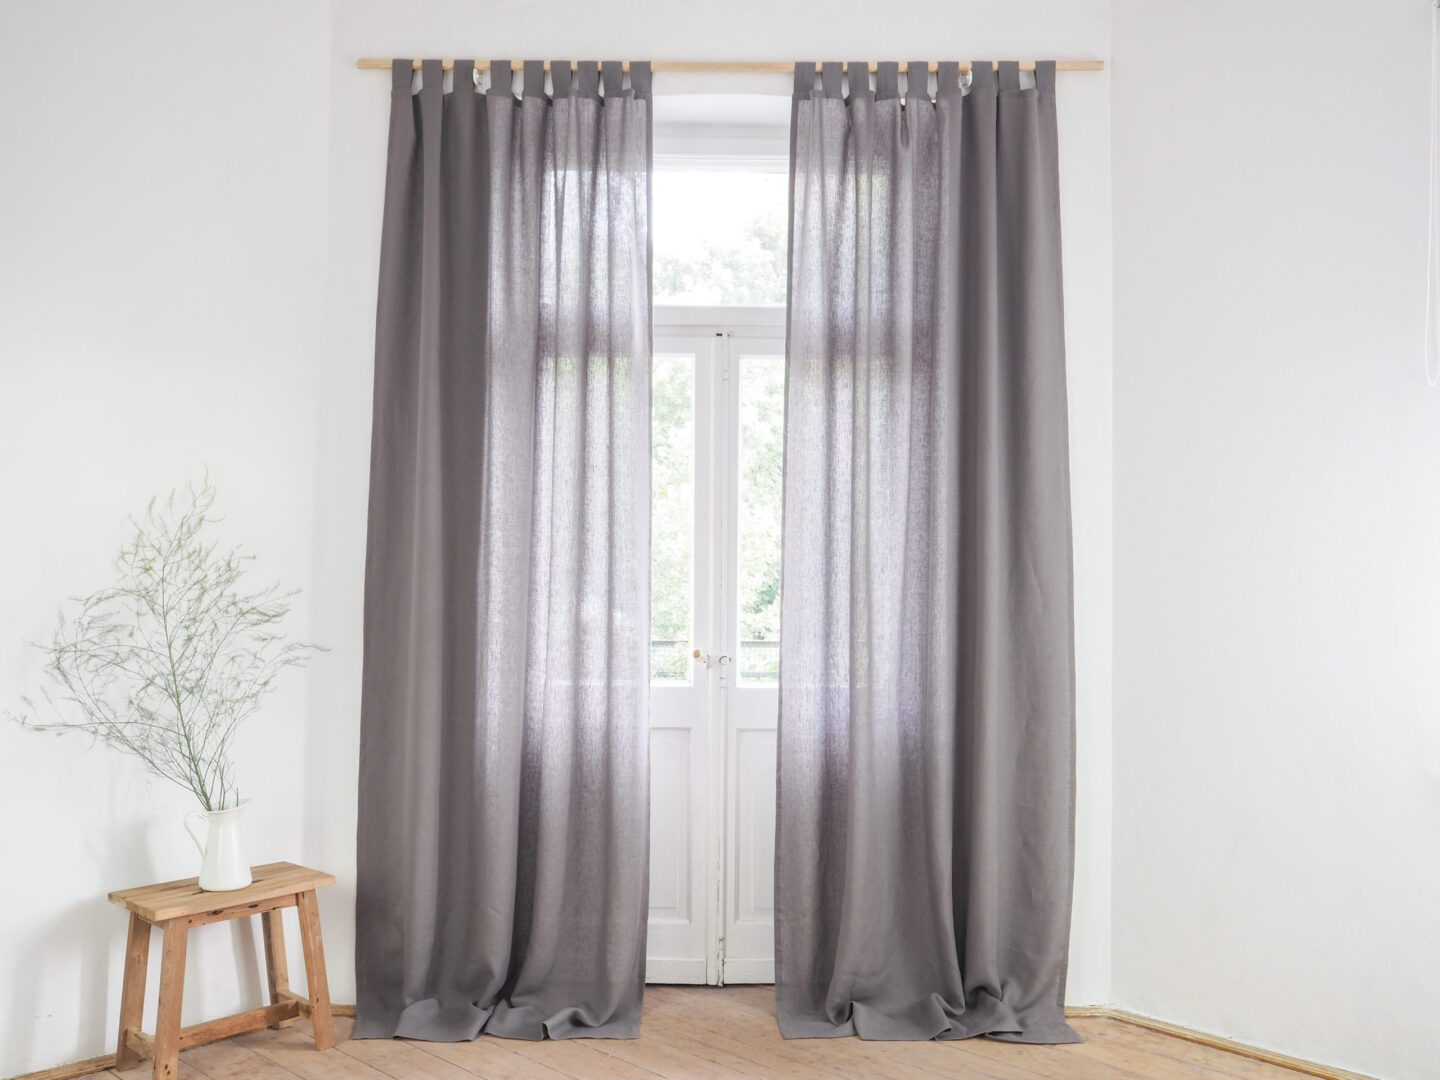 Gray tab top window curtain panel made of stonewashed linen